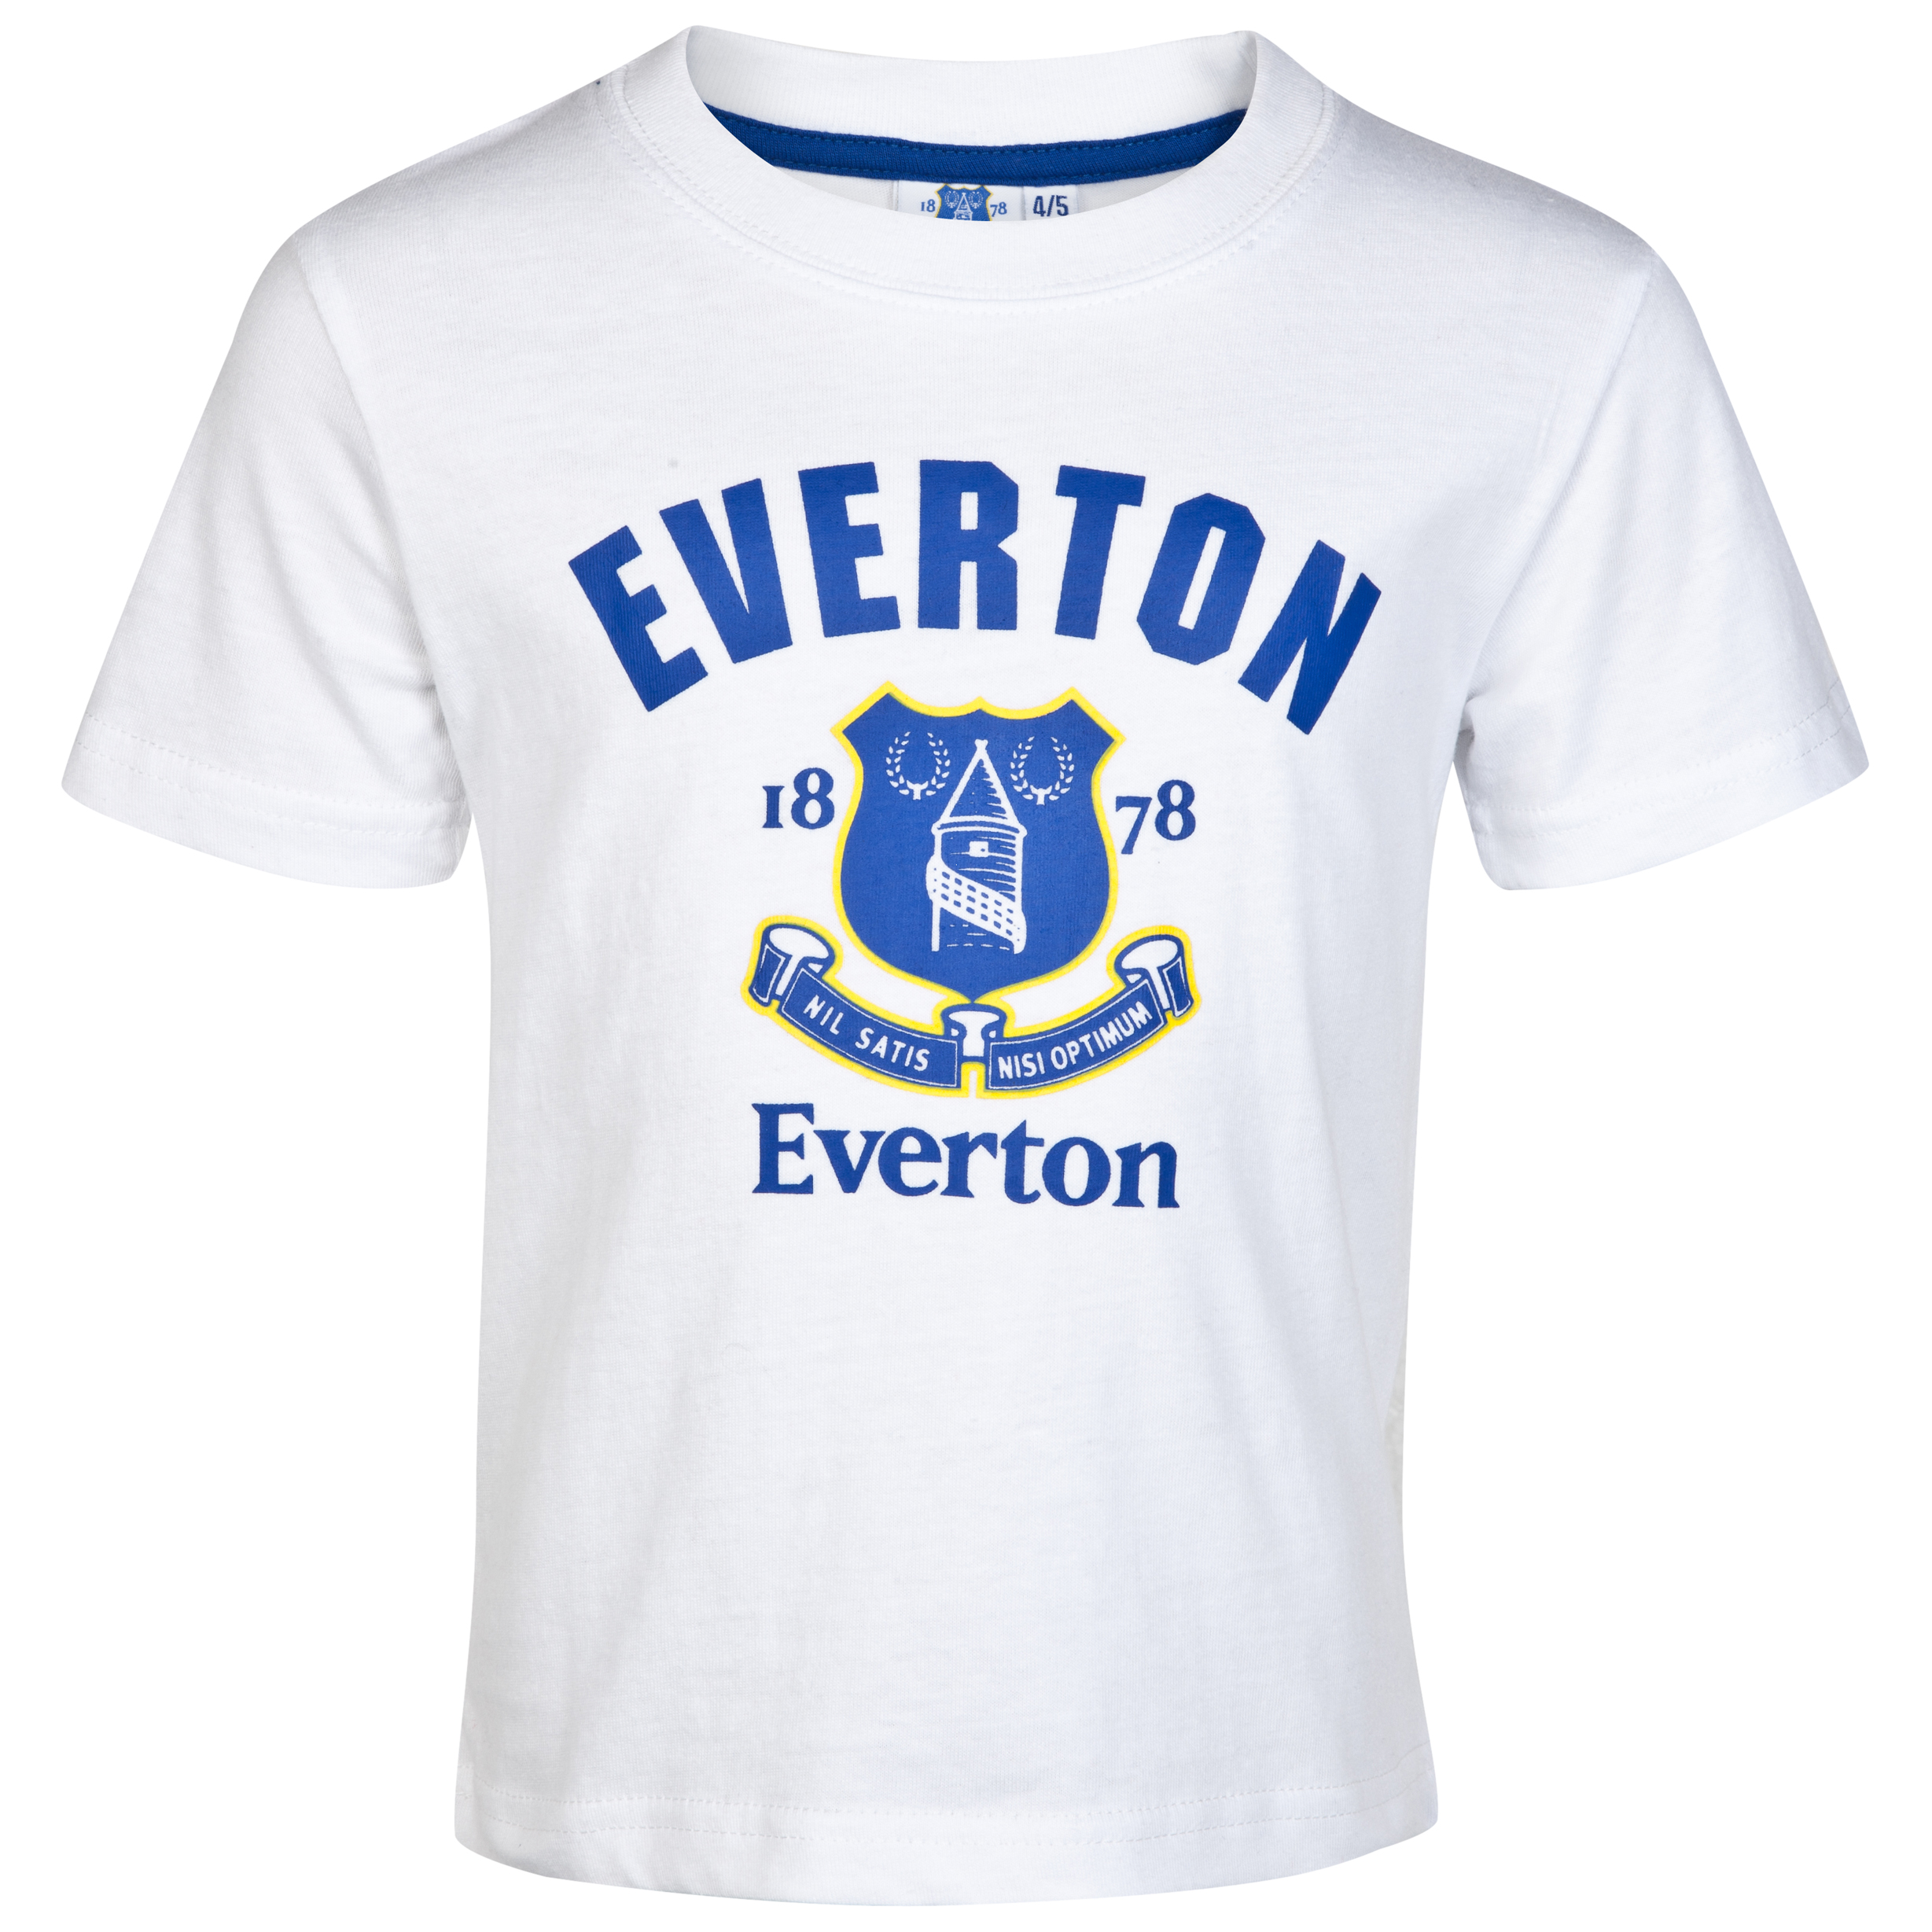 Everton Essentials Whistle T-Shirt - White - Infant Boys